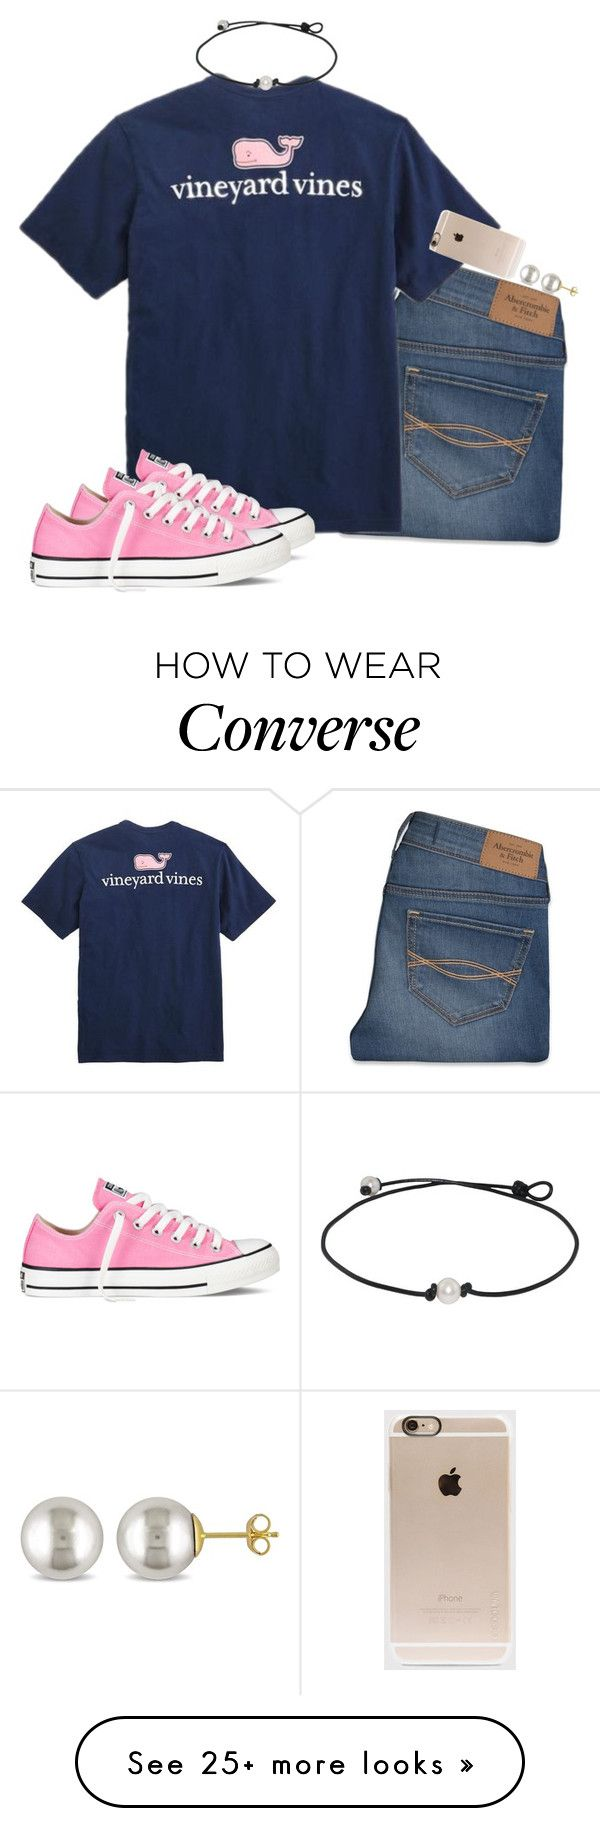 """""""My sample set☁️"""" by ellababy13 on Polyvore featuring Abercrombie & Fitch, Vineyard Vines, Converse, Miadora and Incase"""